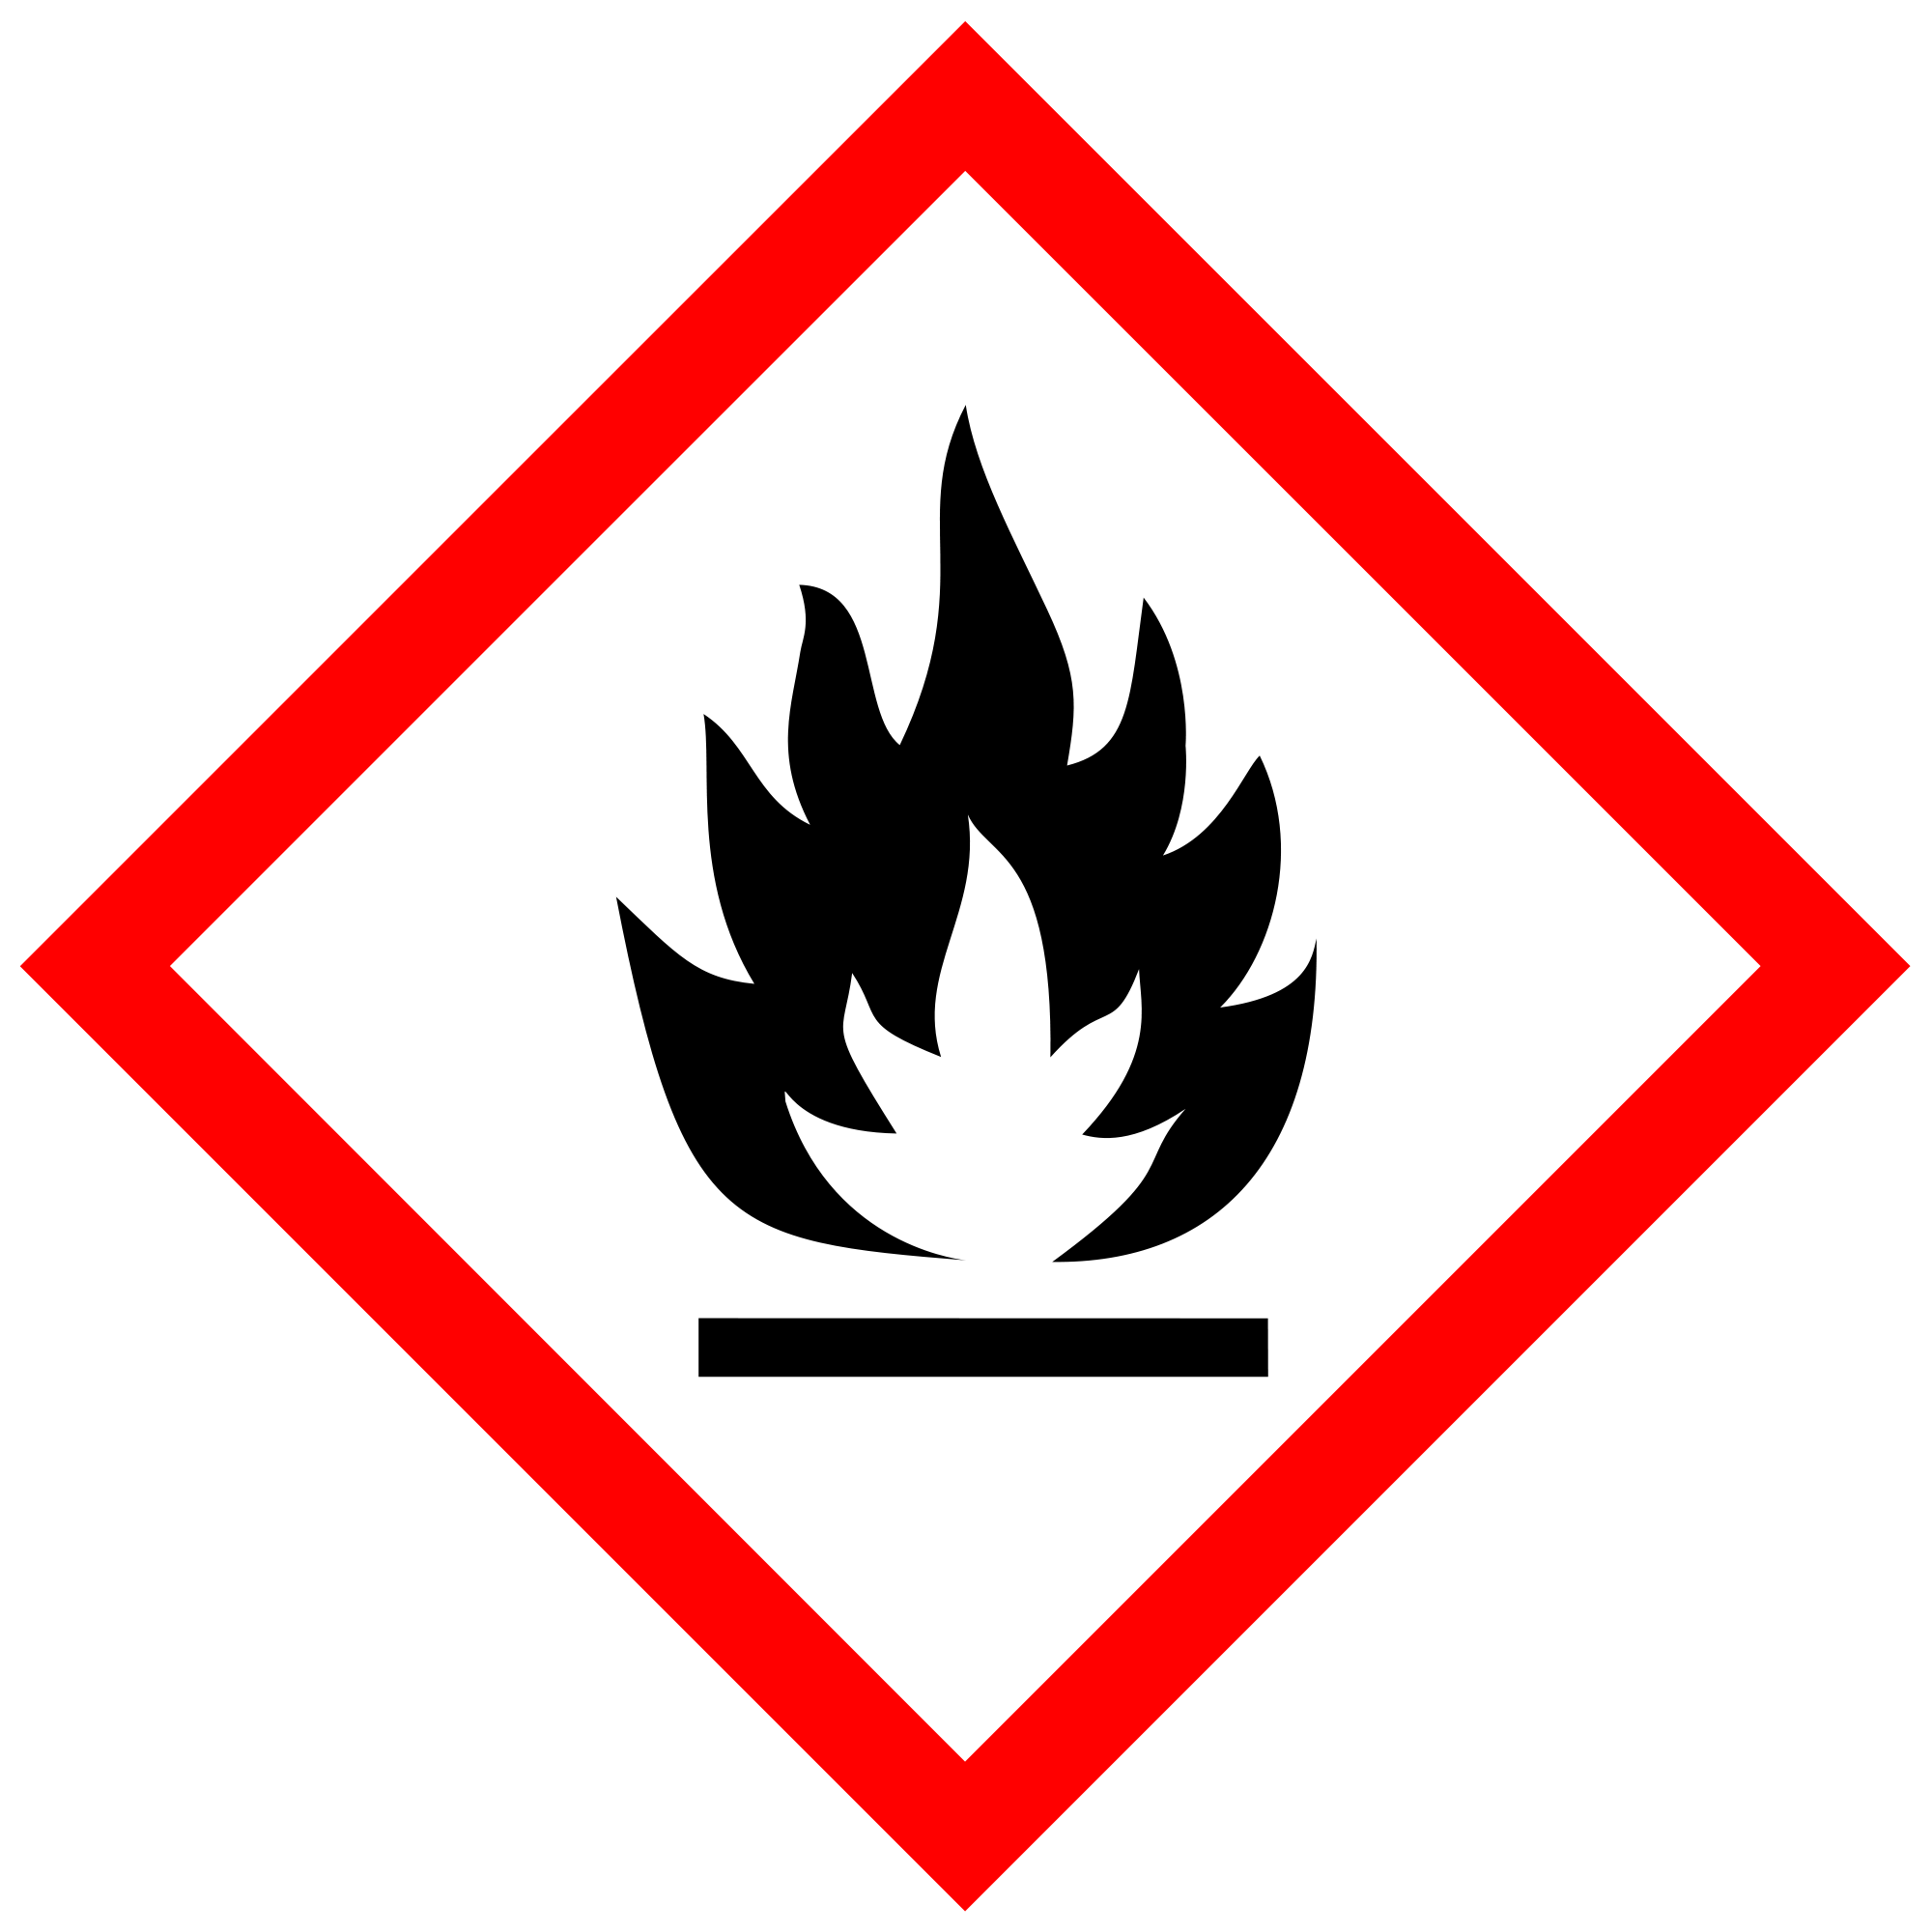 Fire pictogram warning signs. Clipart computer hazard